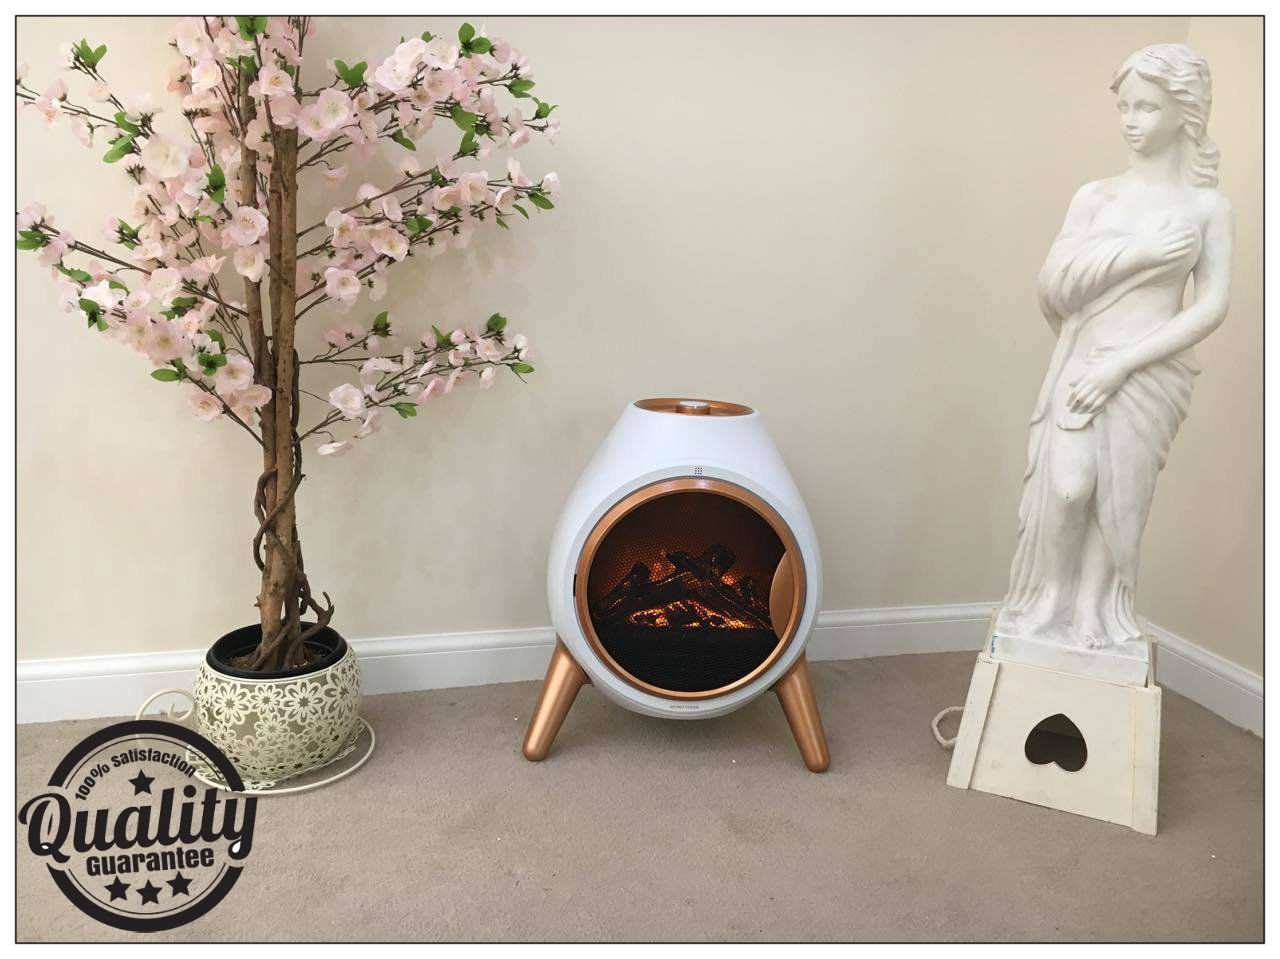 Garden Mile® Portable 1.8Kw White Retro Oval Log Burner Electric Fire Stove, Free Standing Realistic Flame Effect Insert Fire Room Heater Wood Burner 2 Heat Settings And Opening Door